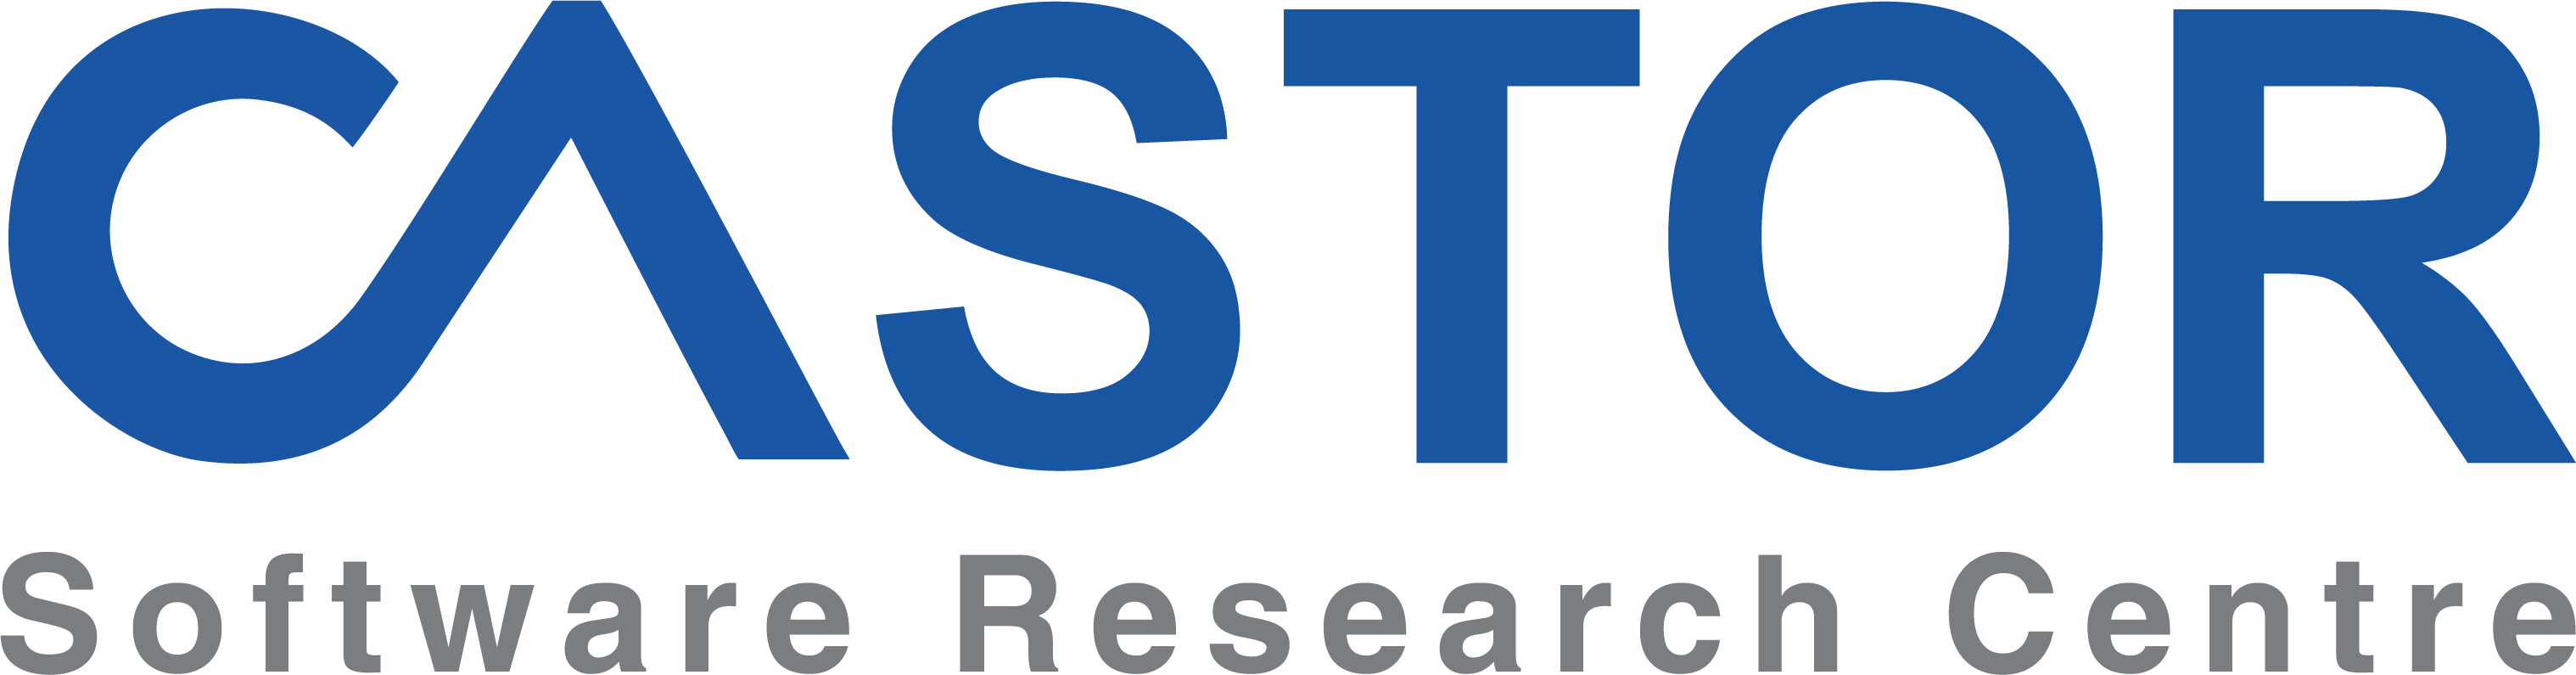 Logo CASTOR Software Research Centre